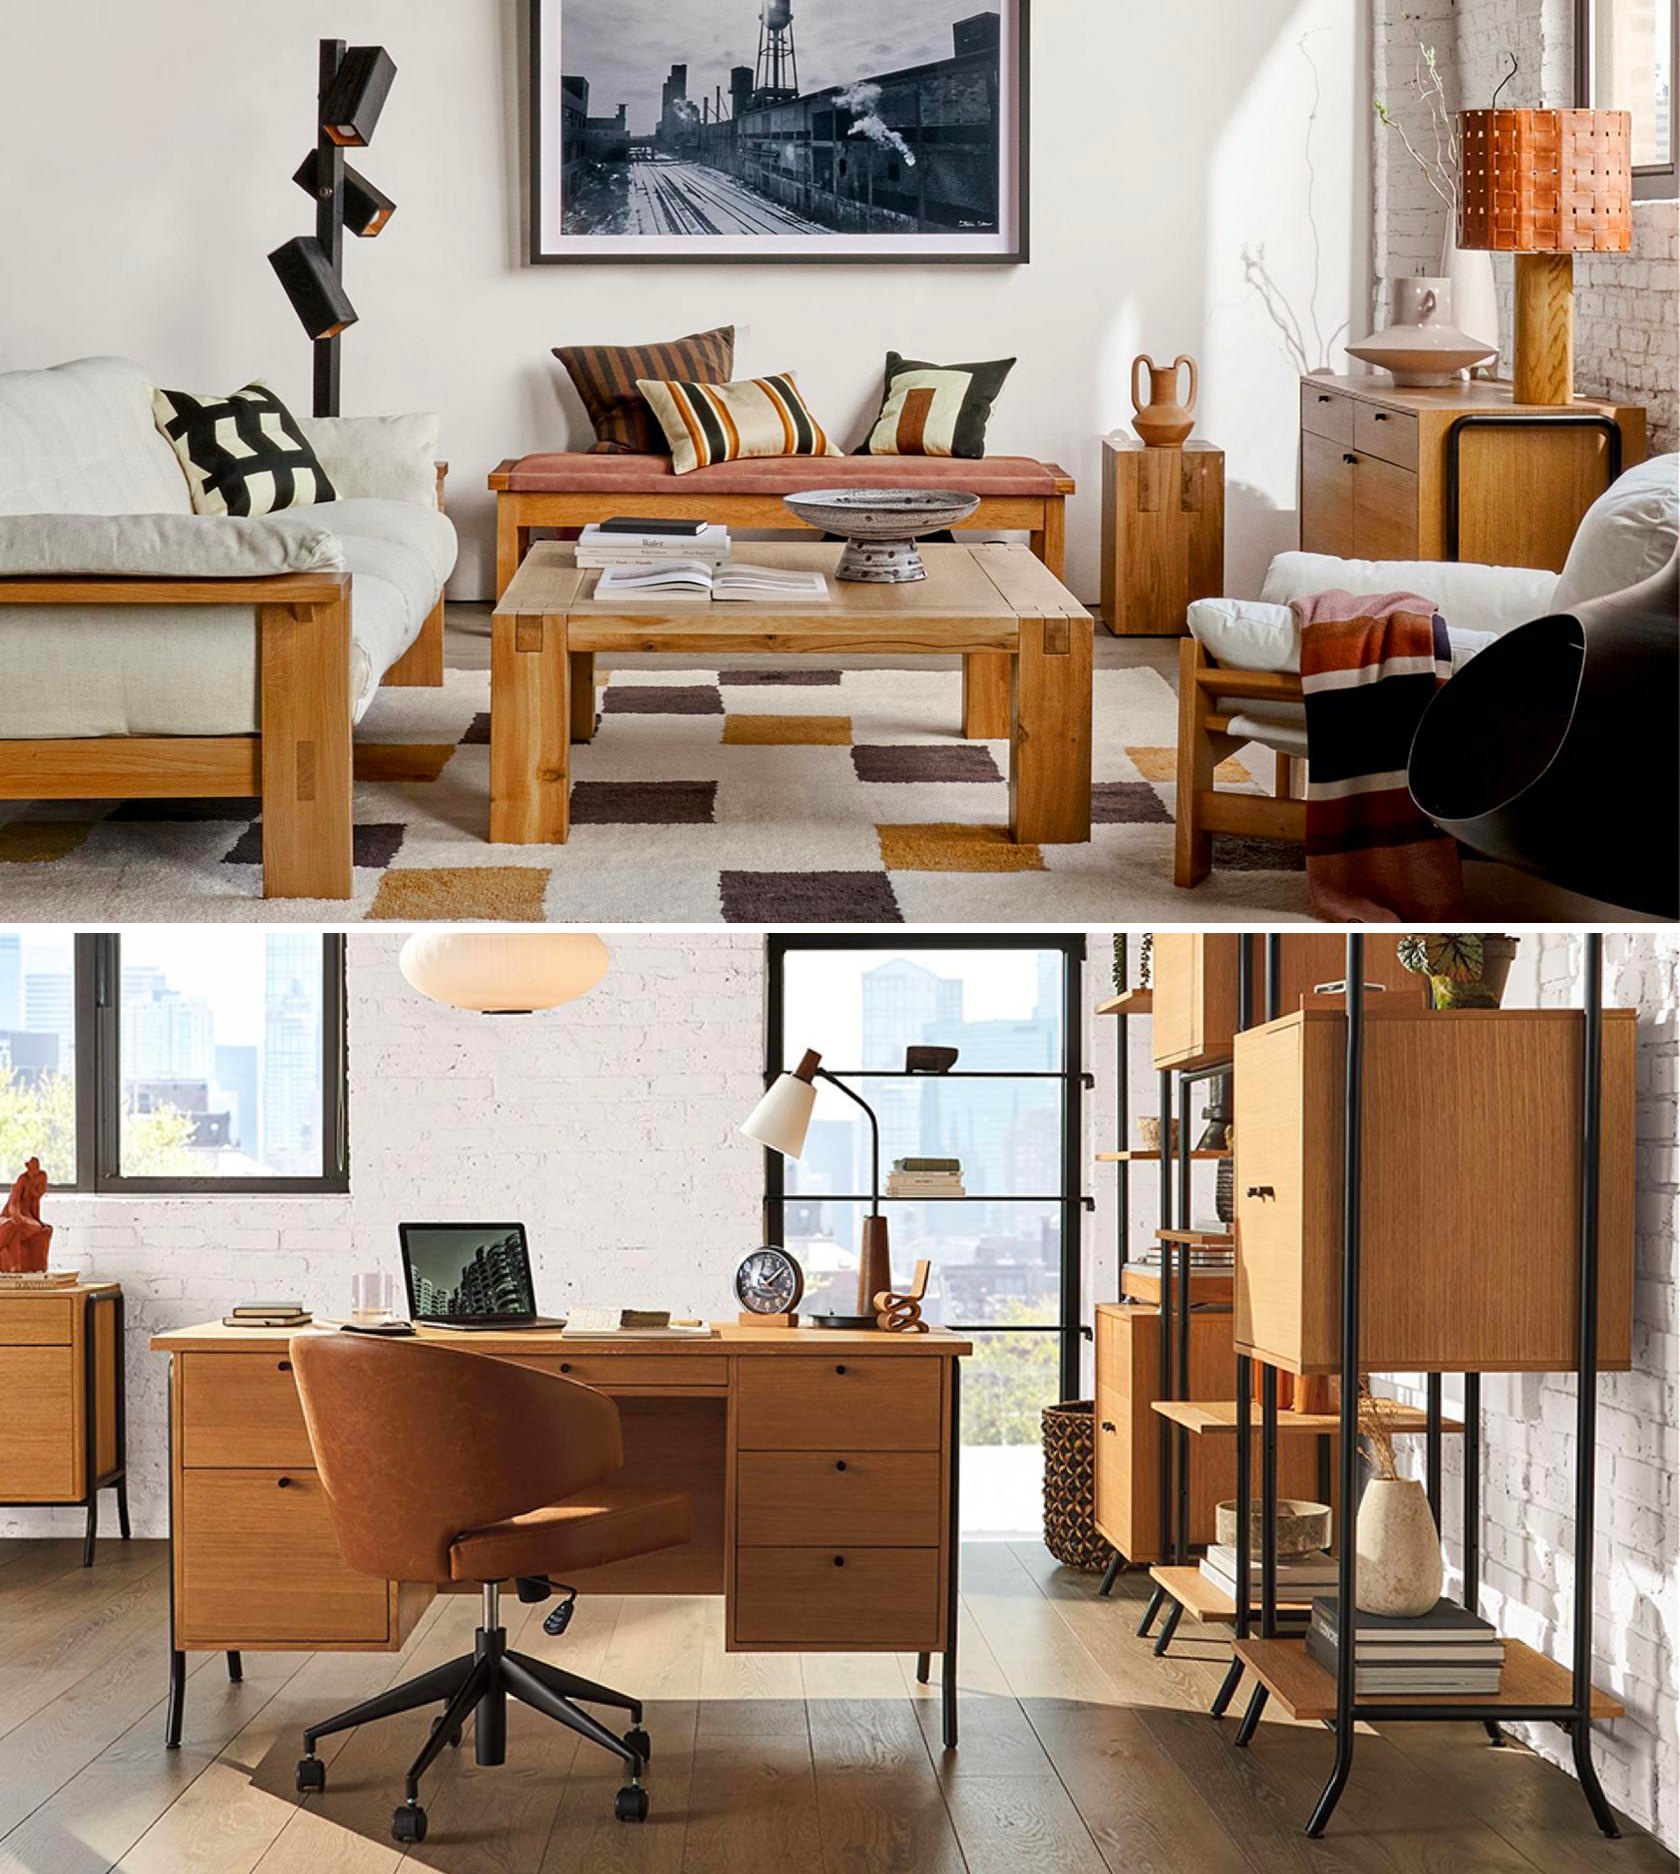 Shinola x Crate & Barrel Home Furnishings Collection at werd.com